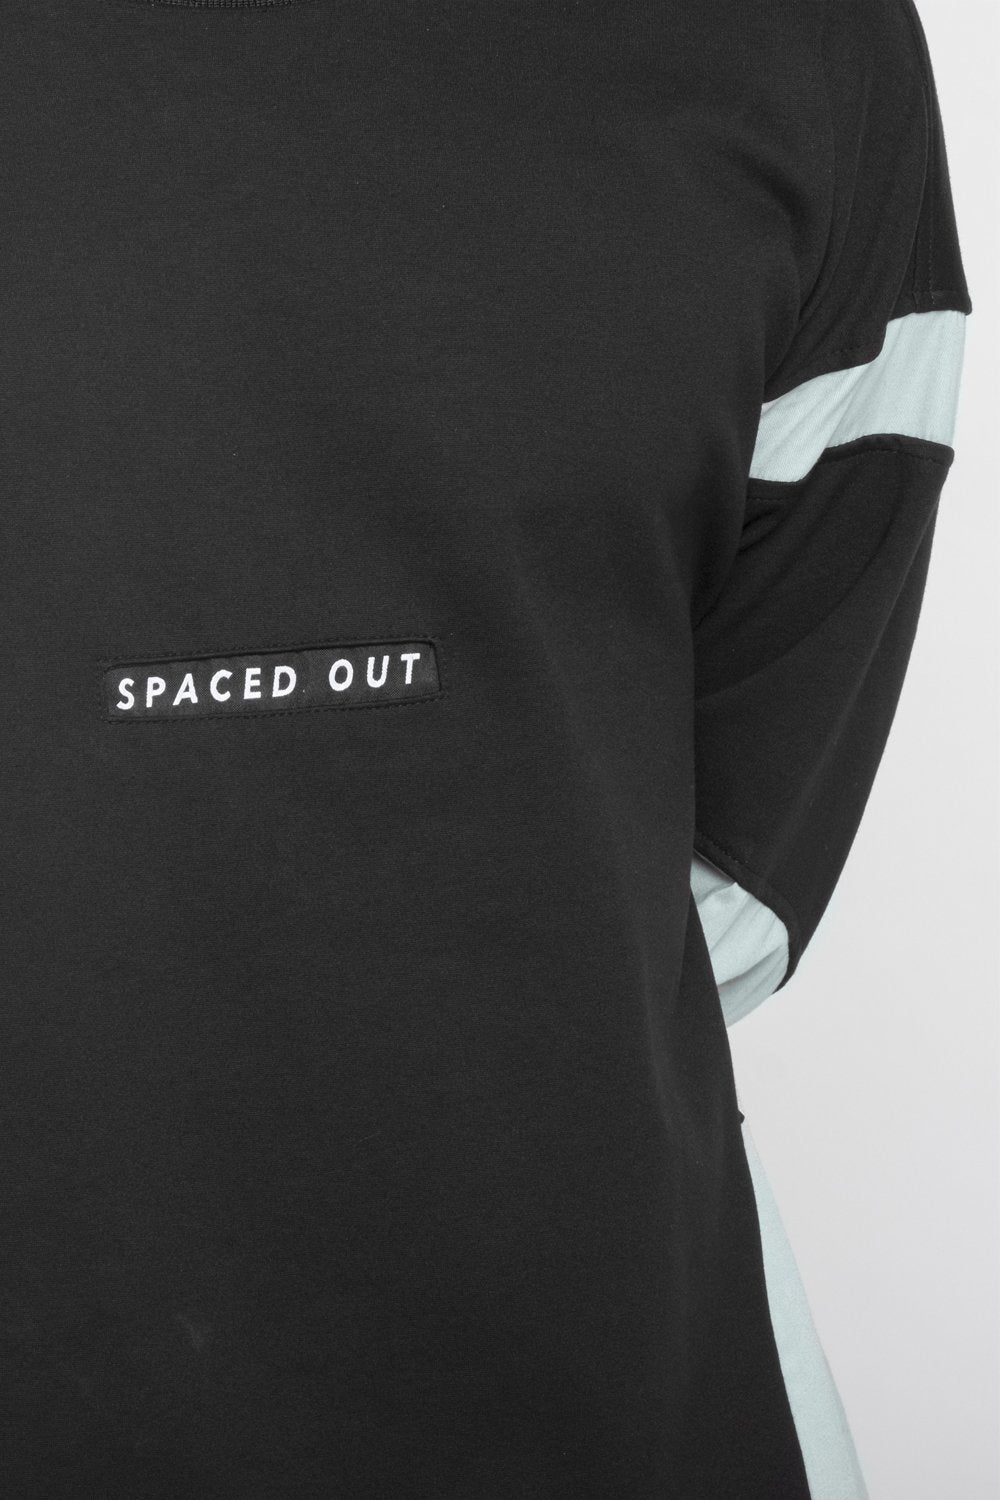 SPACEDOUT SWEATSHIRT